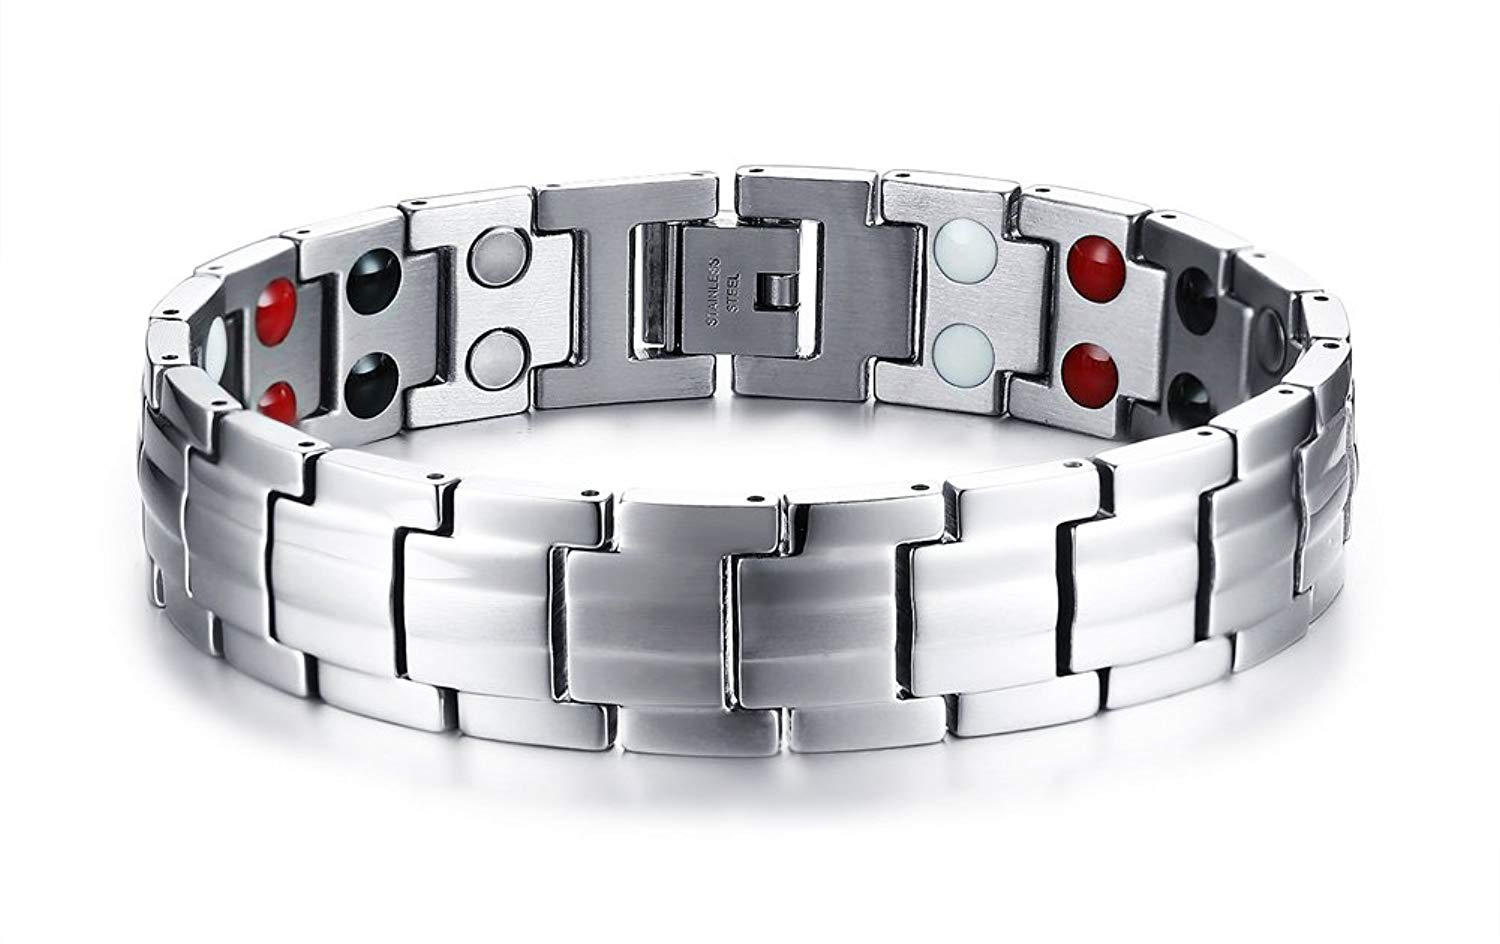 MPRAINBOW Stainless Steel Double Row Healthy Body 4 in 1 Magnetic Therapy Healing Masonic Bracelet 21.5cm